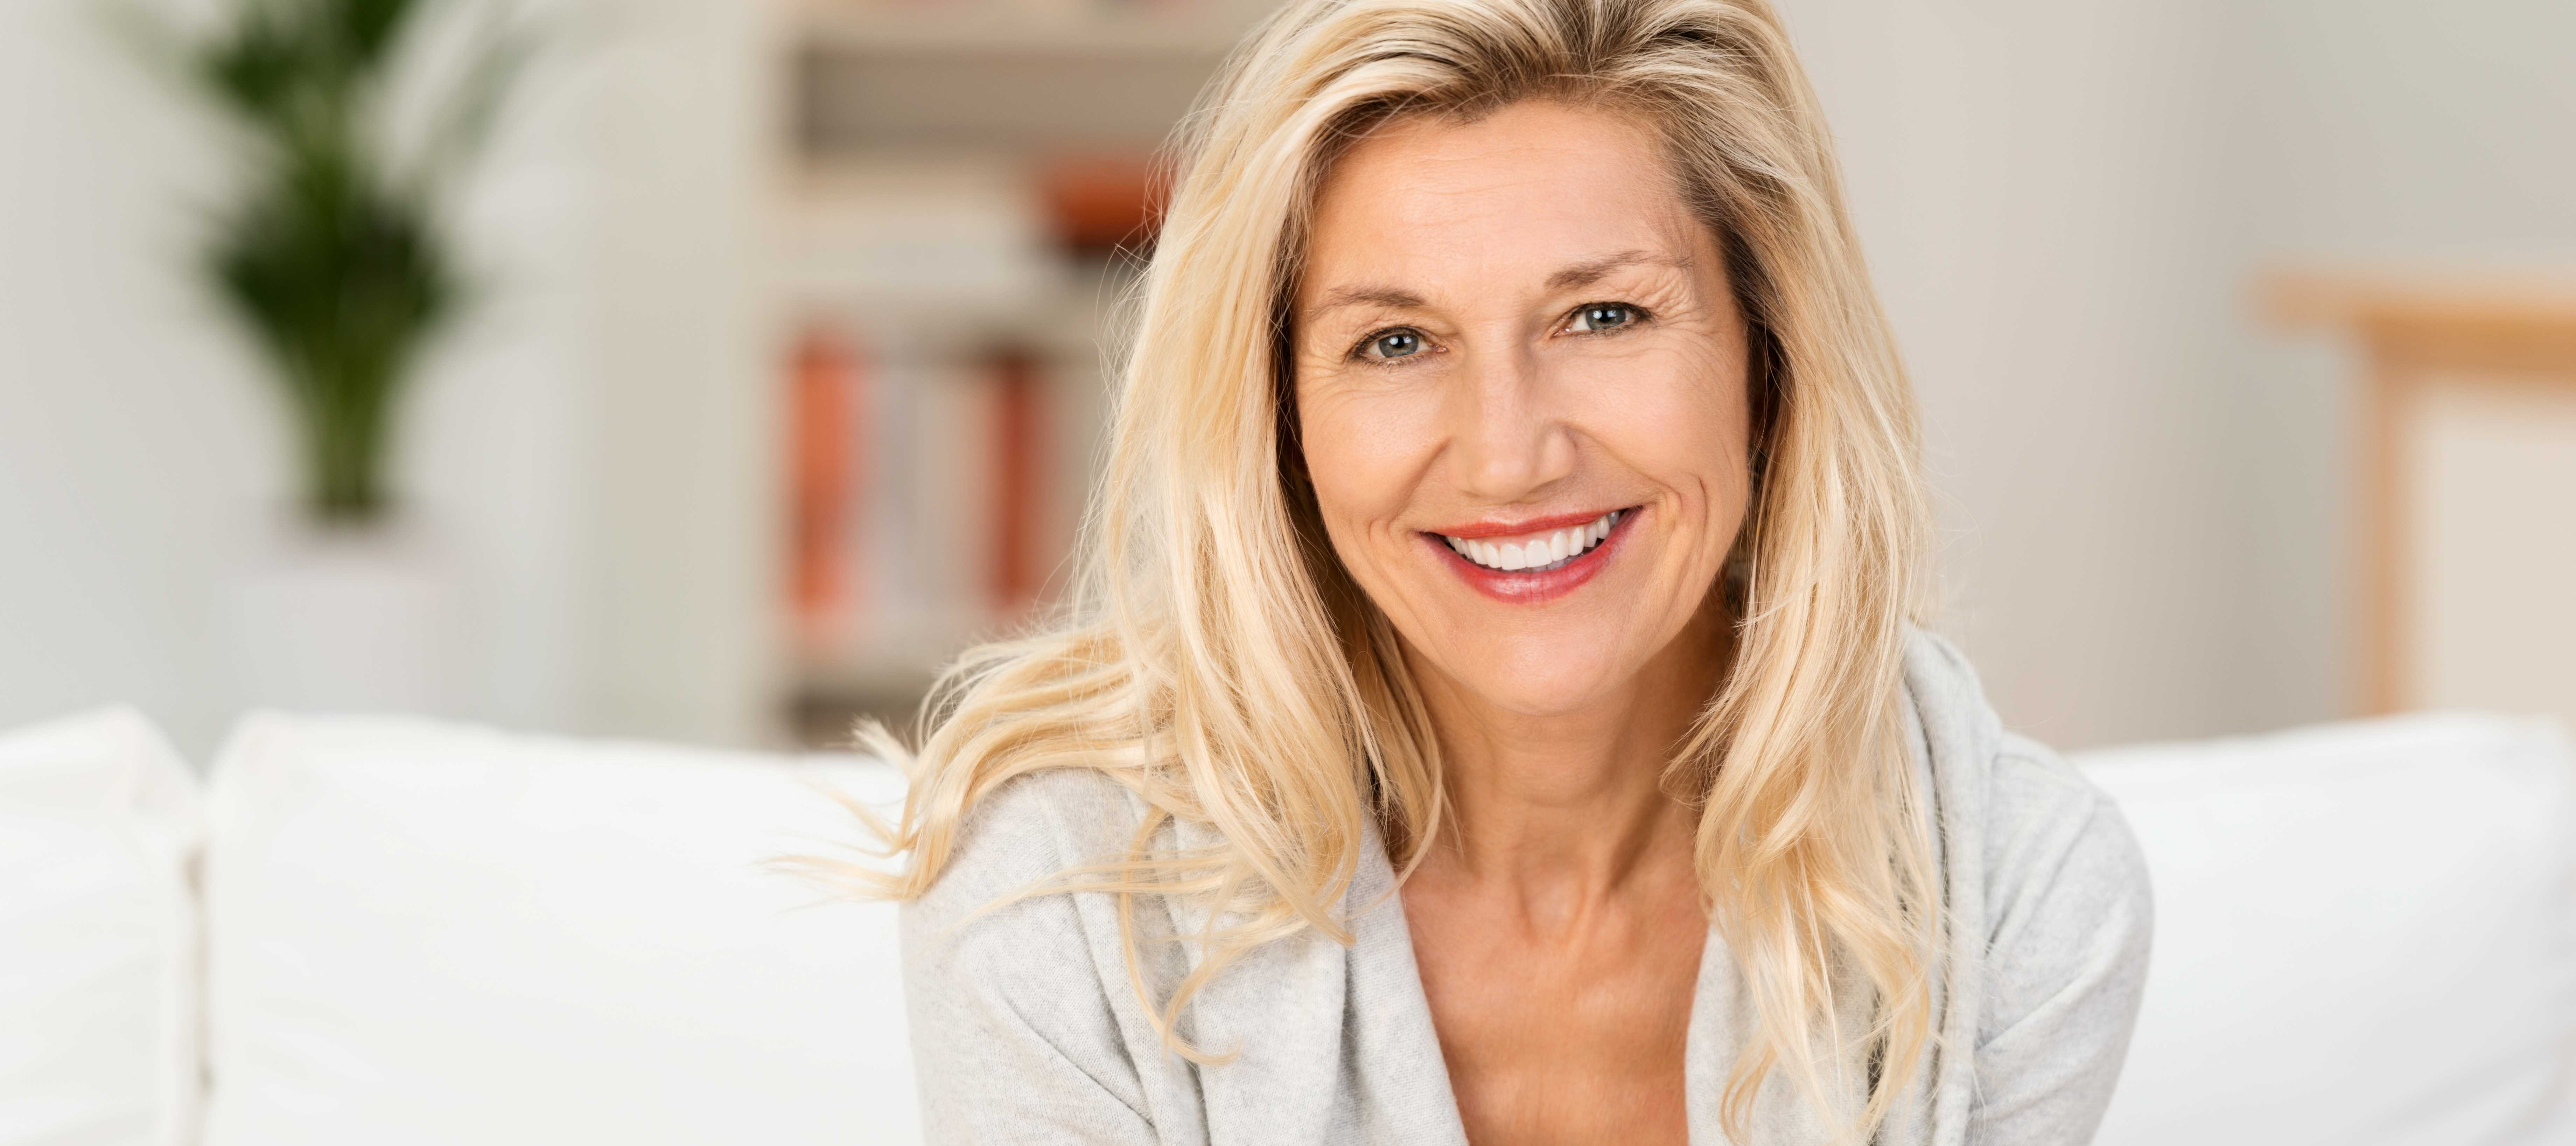 Take Your Skincare to the Next Level With Platelet Rich Plasma in Springfield MO